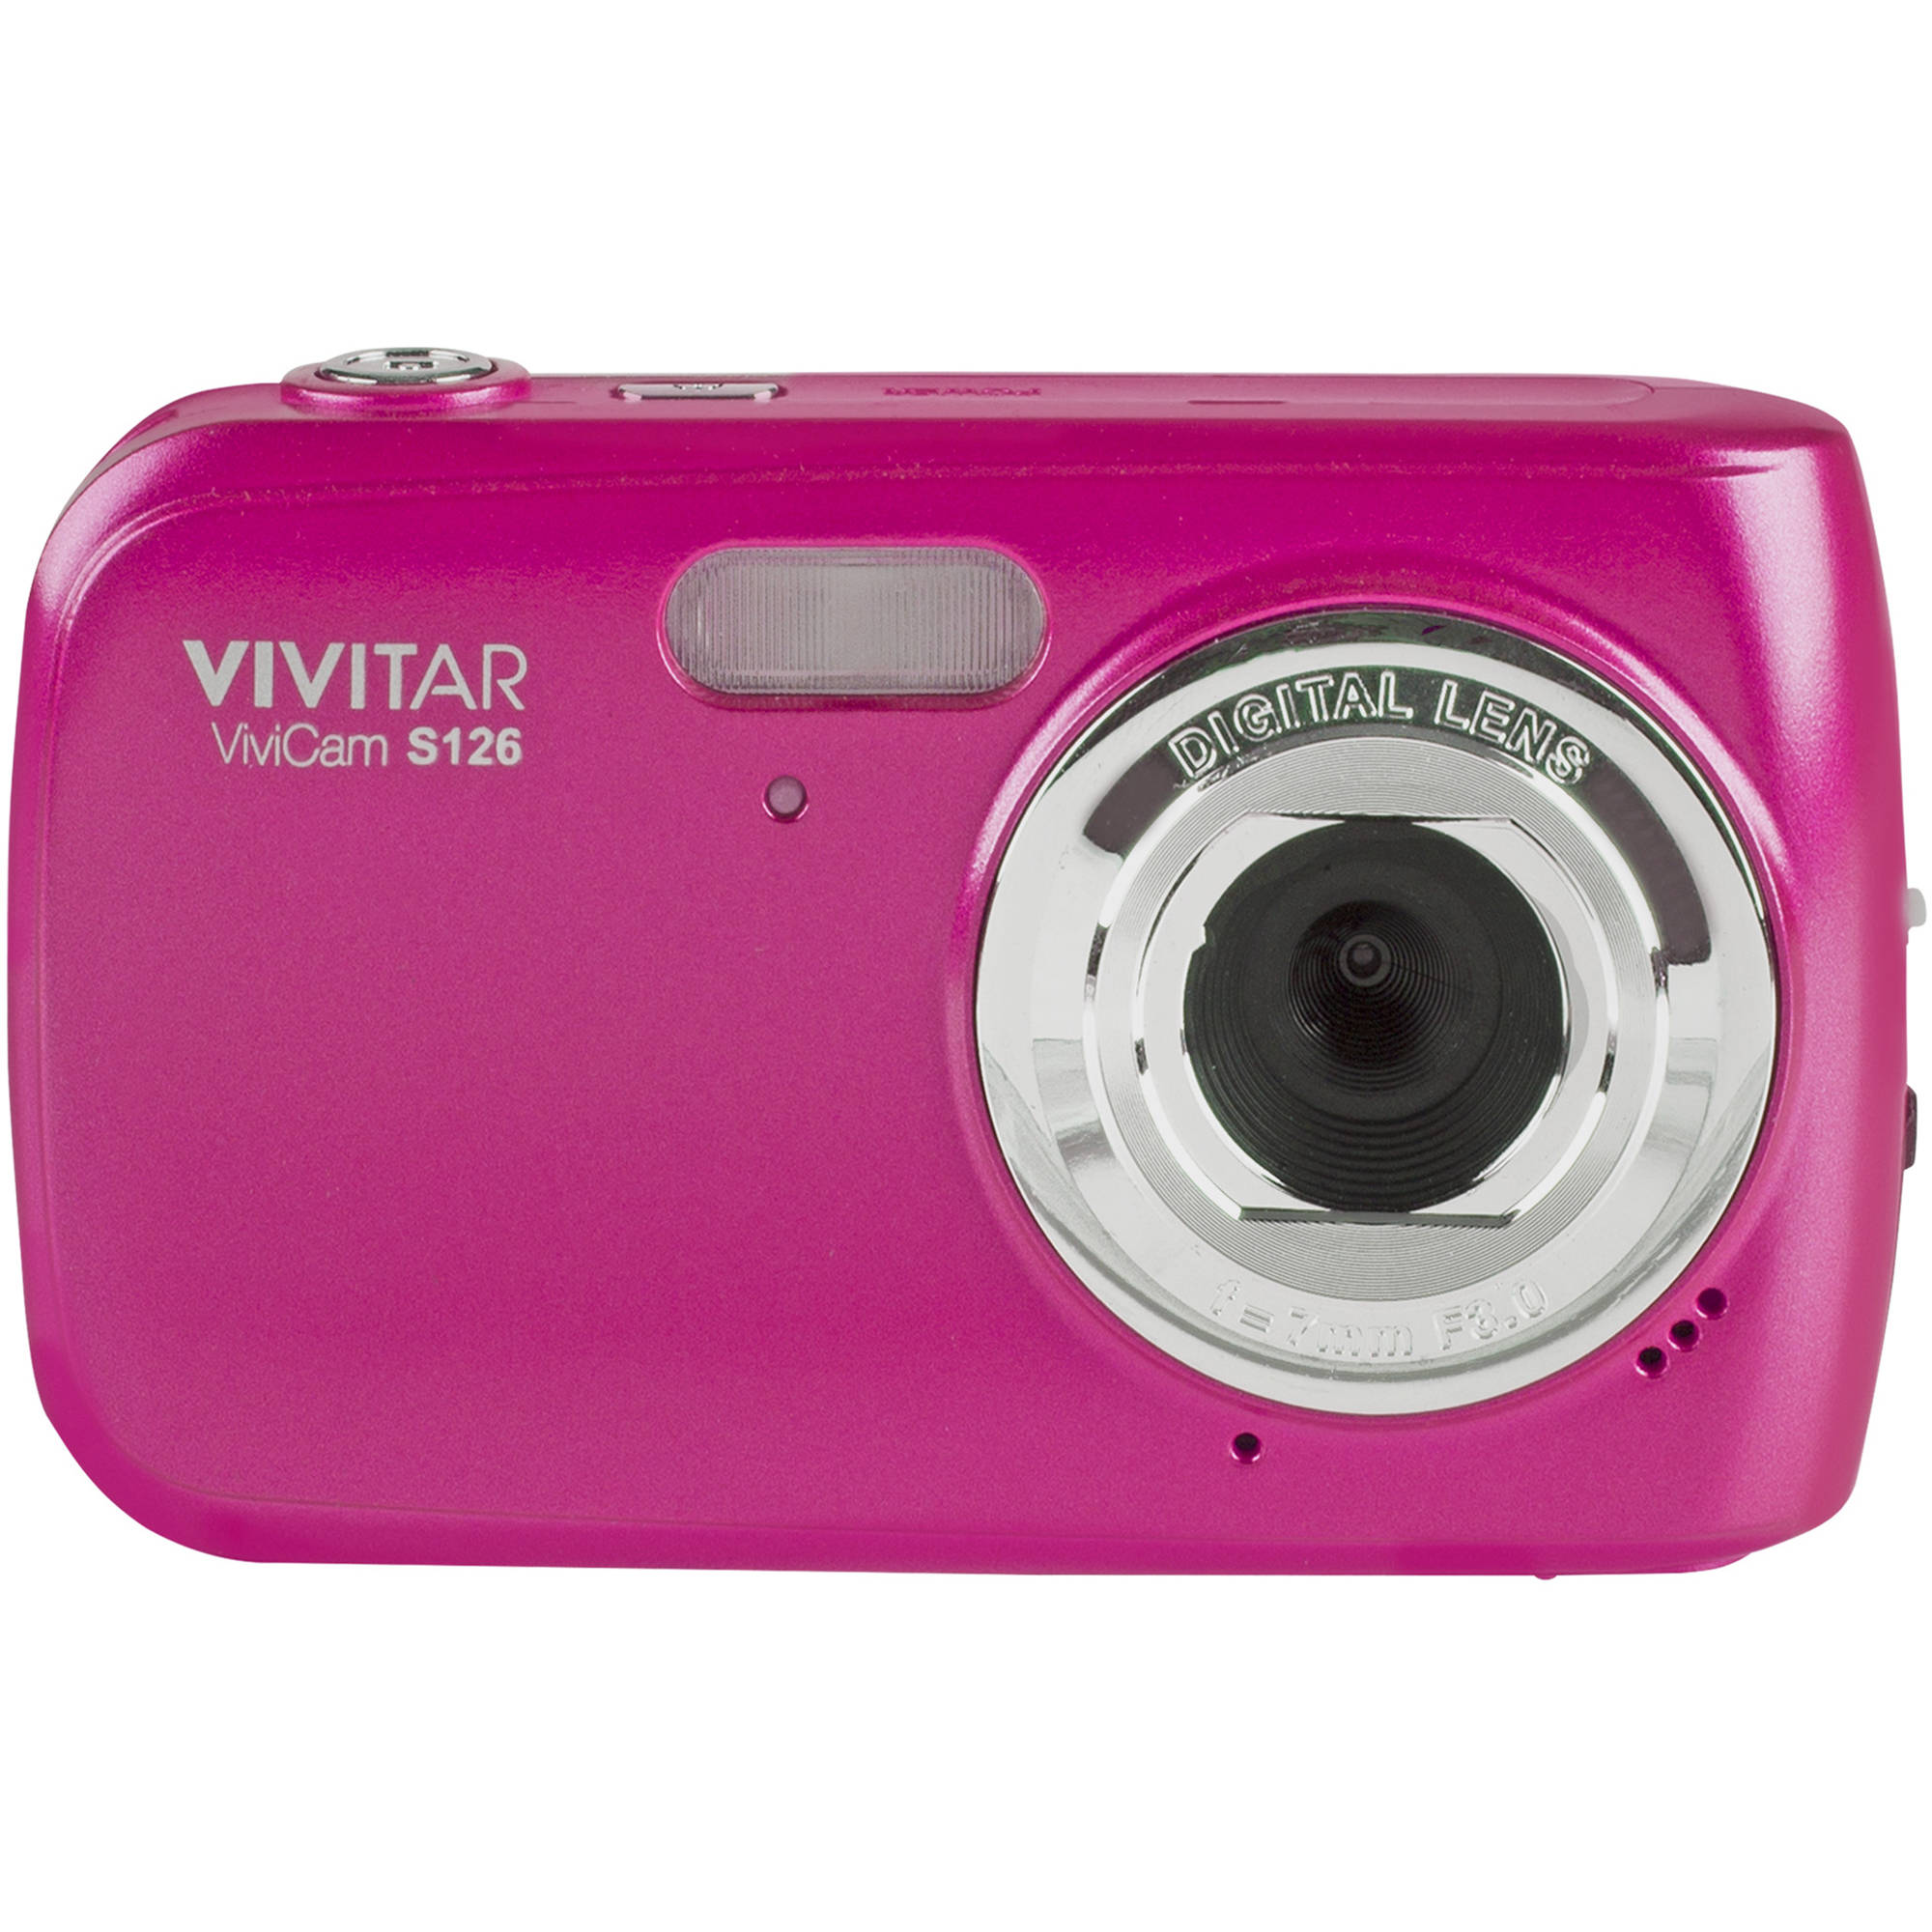 VIVITAR DIGITAL CAMERA WINDOWS 8 X64 DRIVER DOWNLOAD